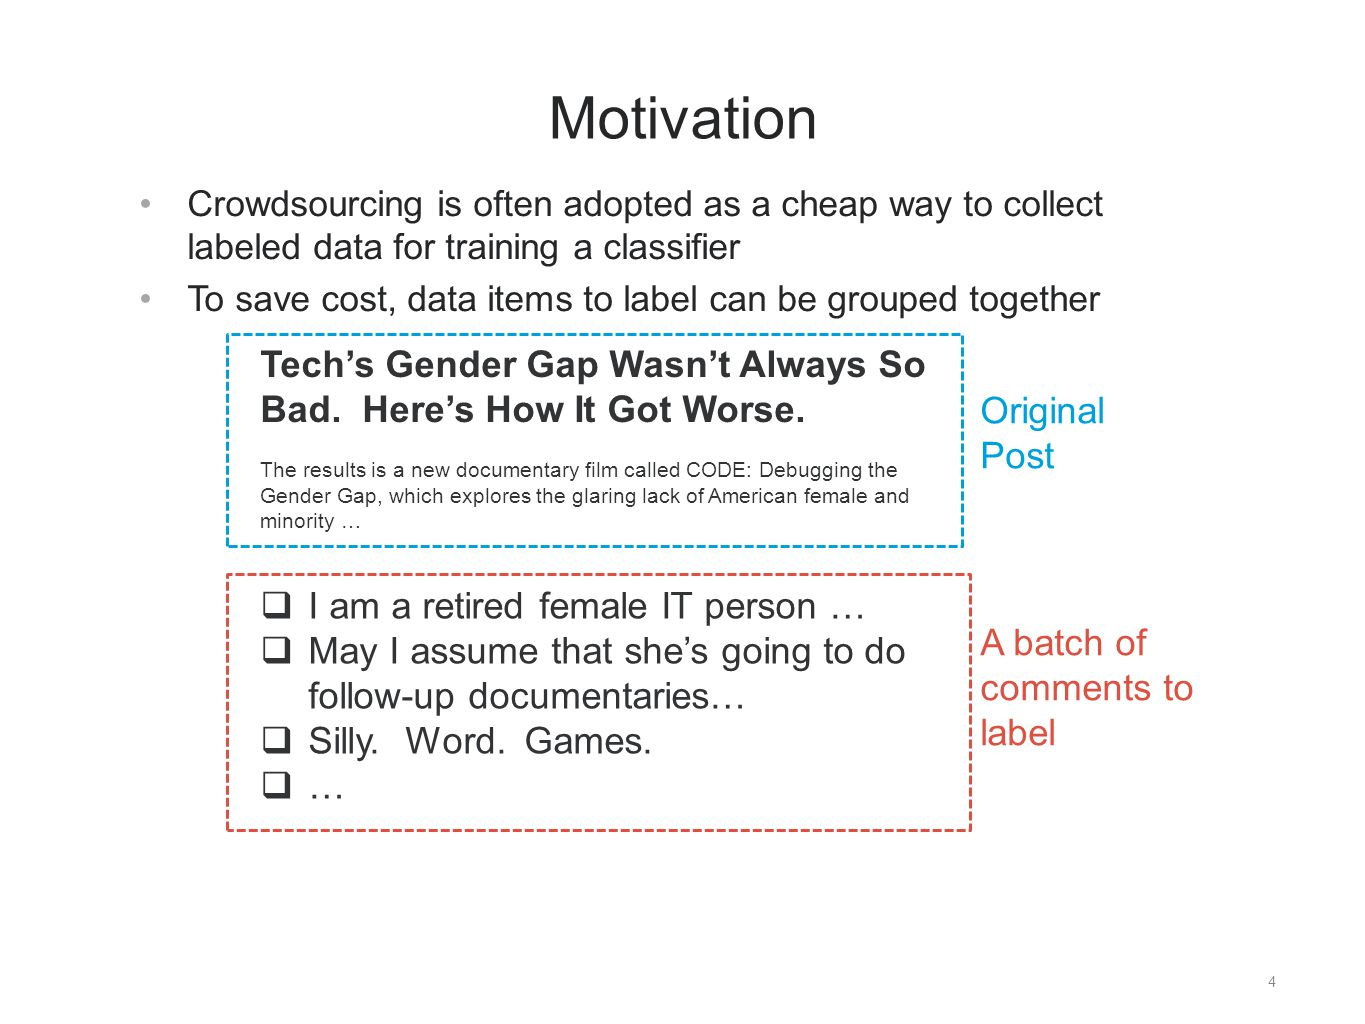 4 Motivation Crowdsourcing is often adopted as a cheap way to collect labeled data for training a classifier To save cost, data items to label can be grouped together A batch of comments to label Original Post Tech's Gender Gap Wasn't Always So Bad.